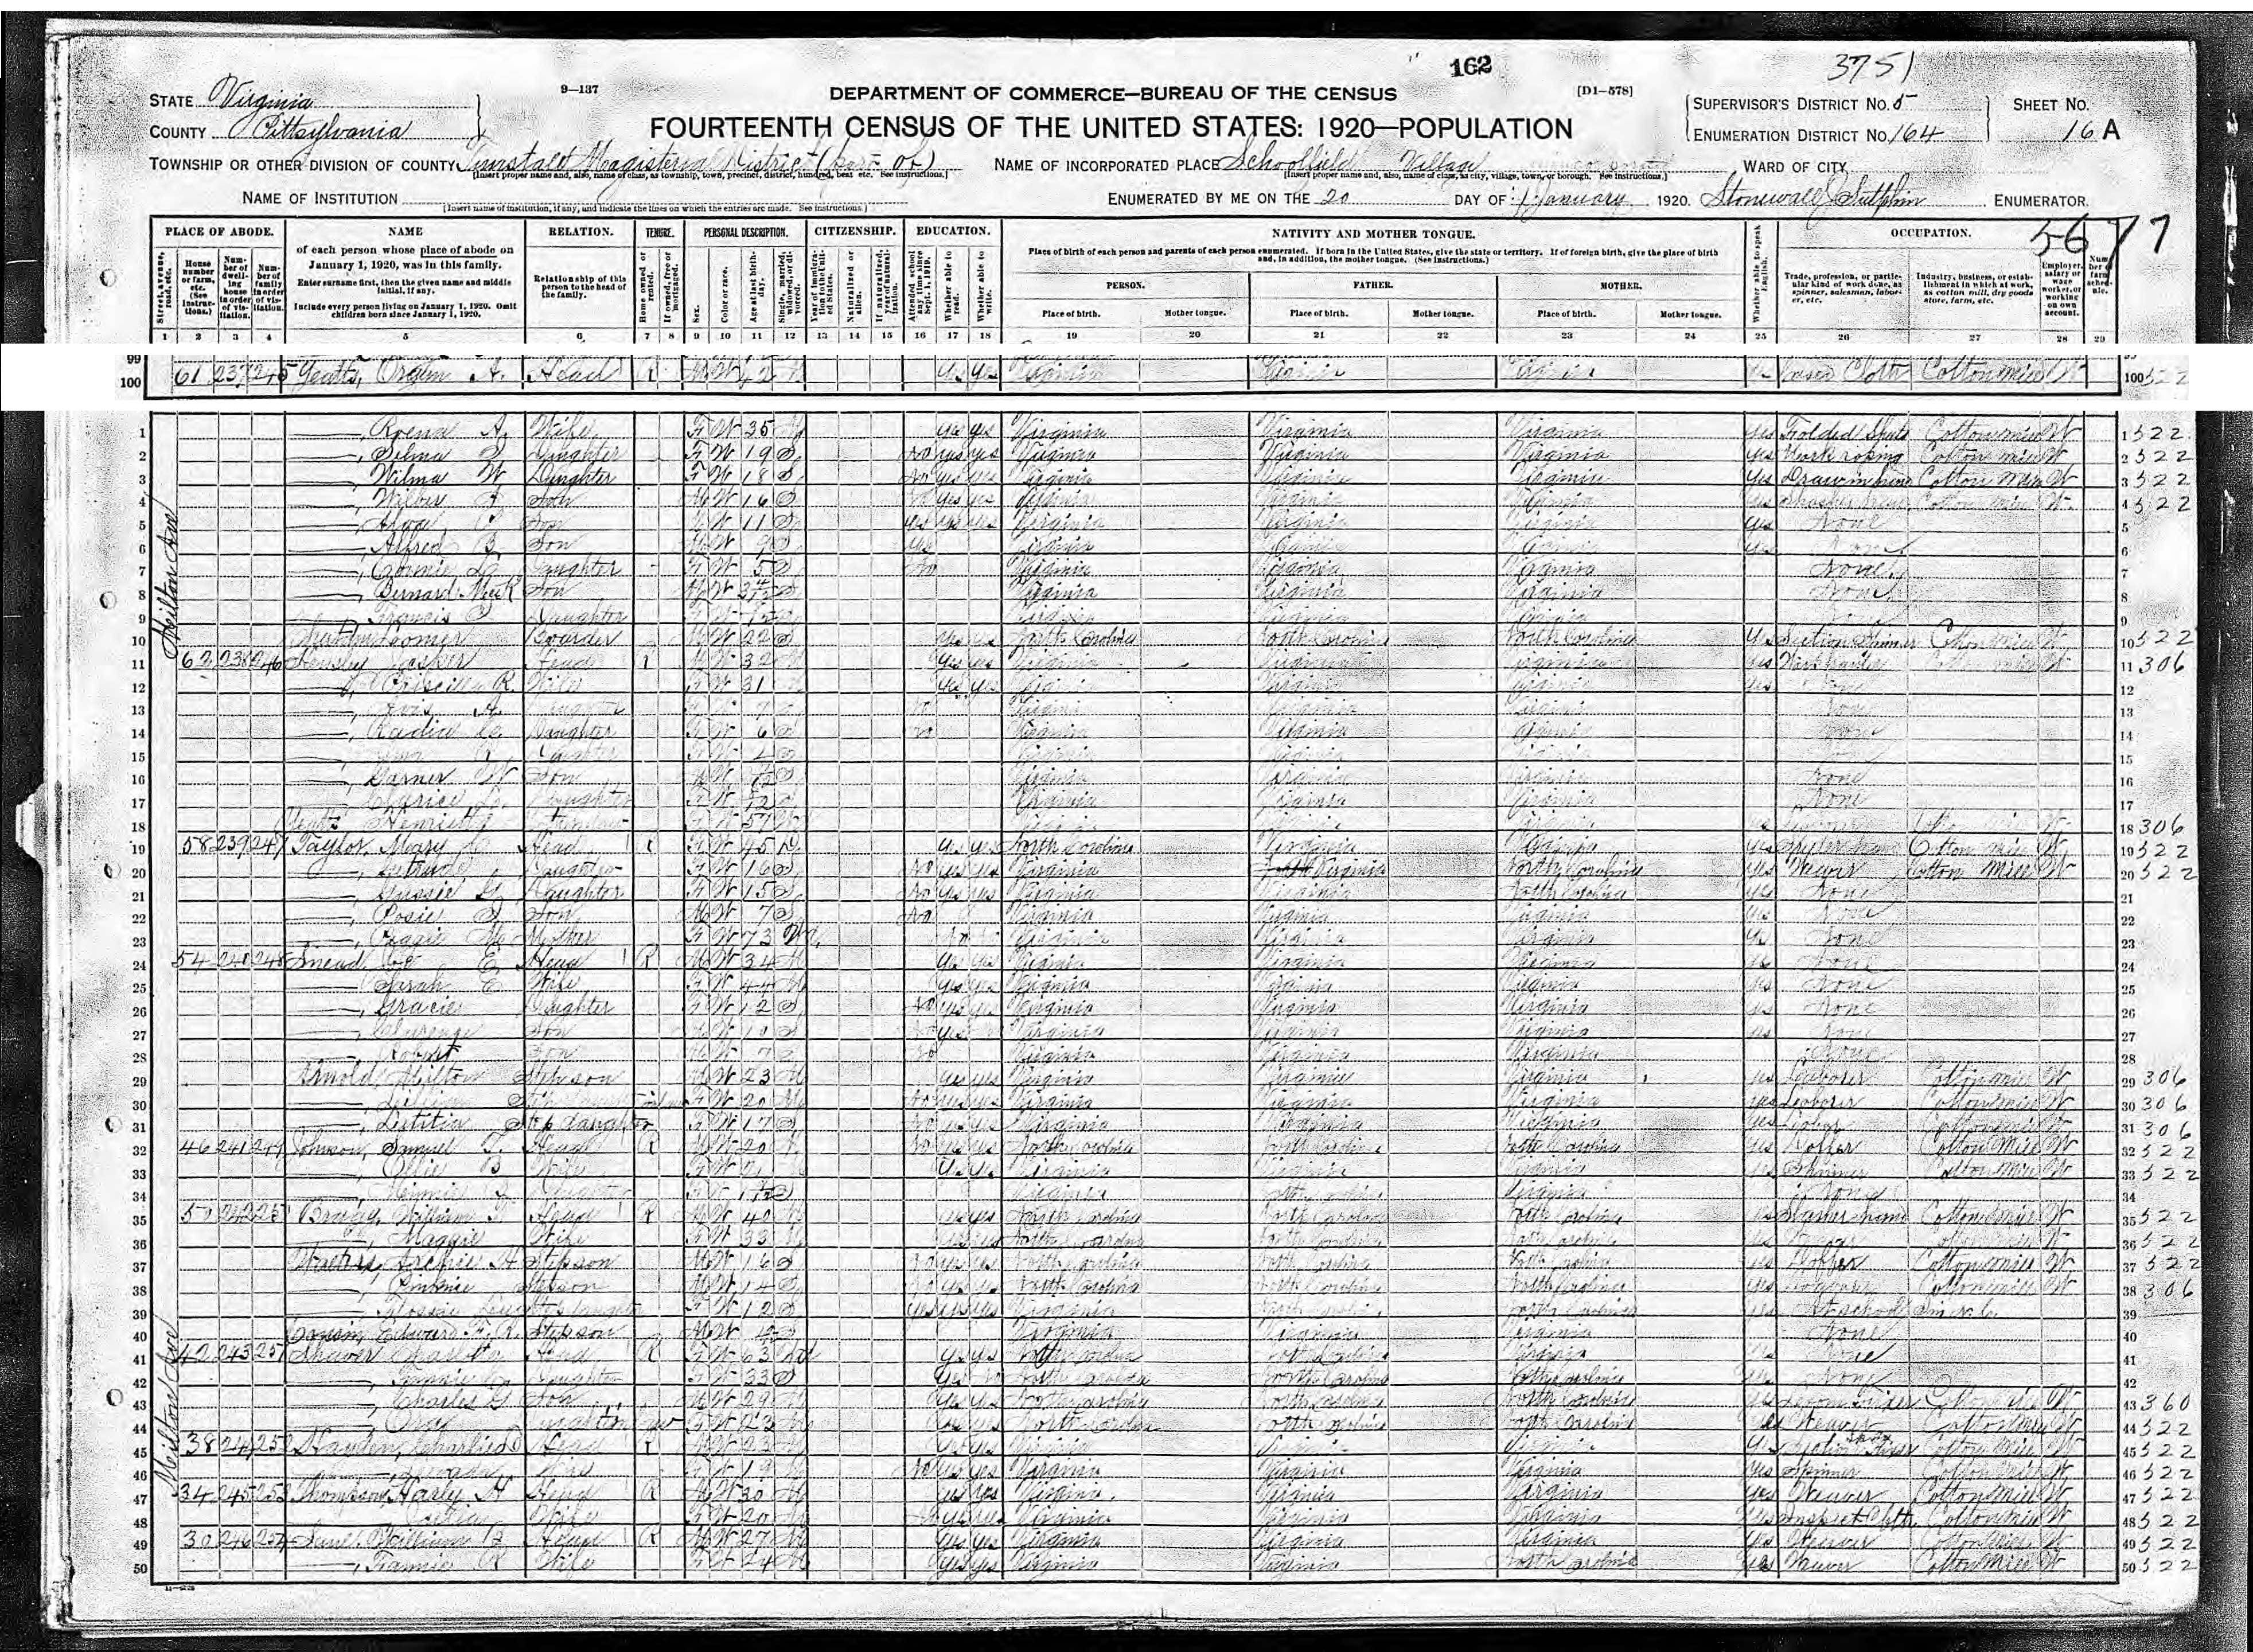 yeatts-hensley 1920 census.jpg